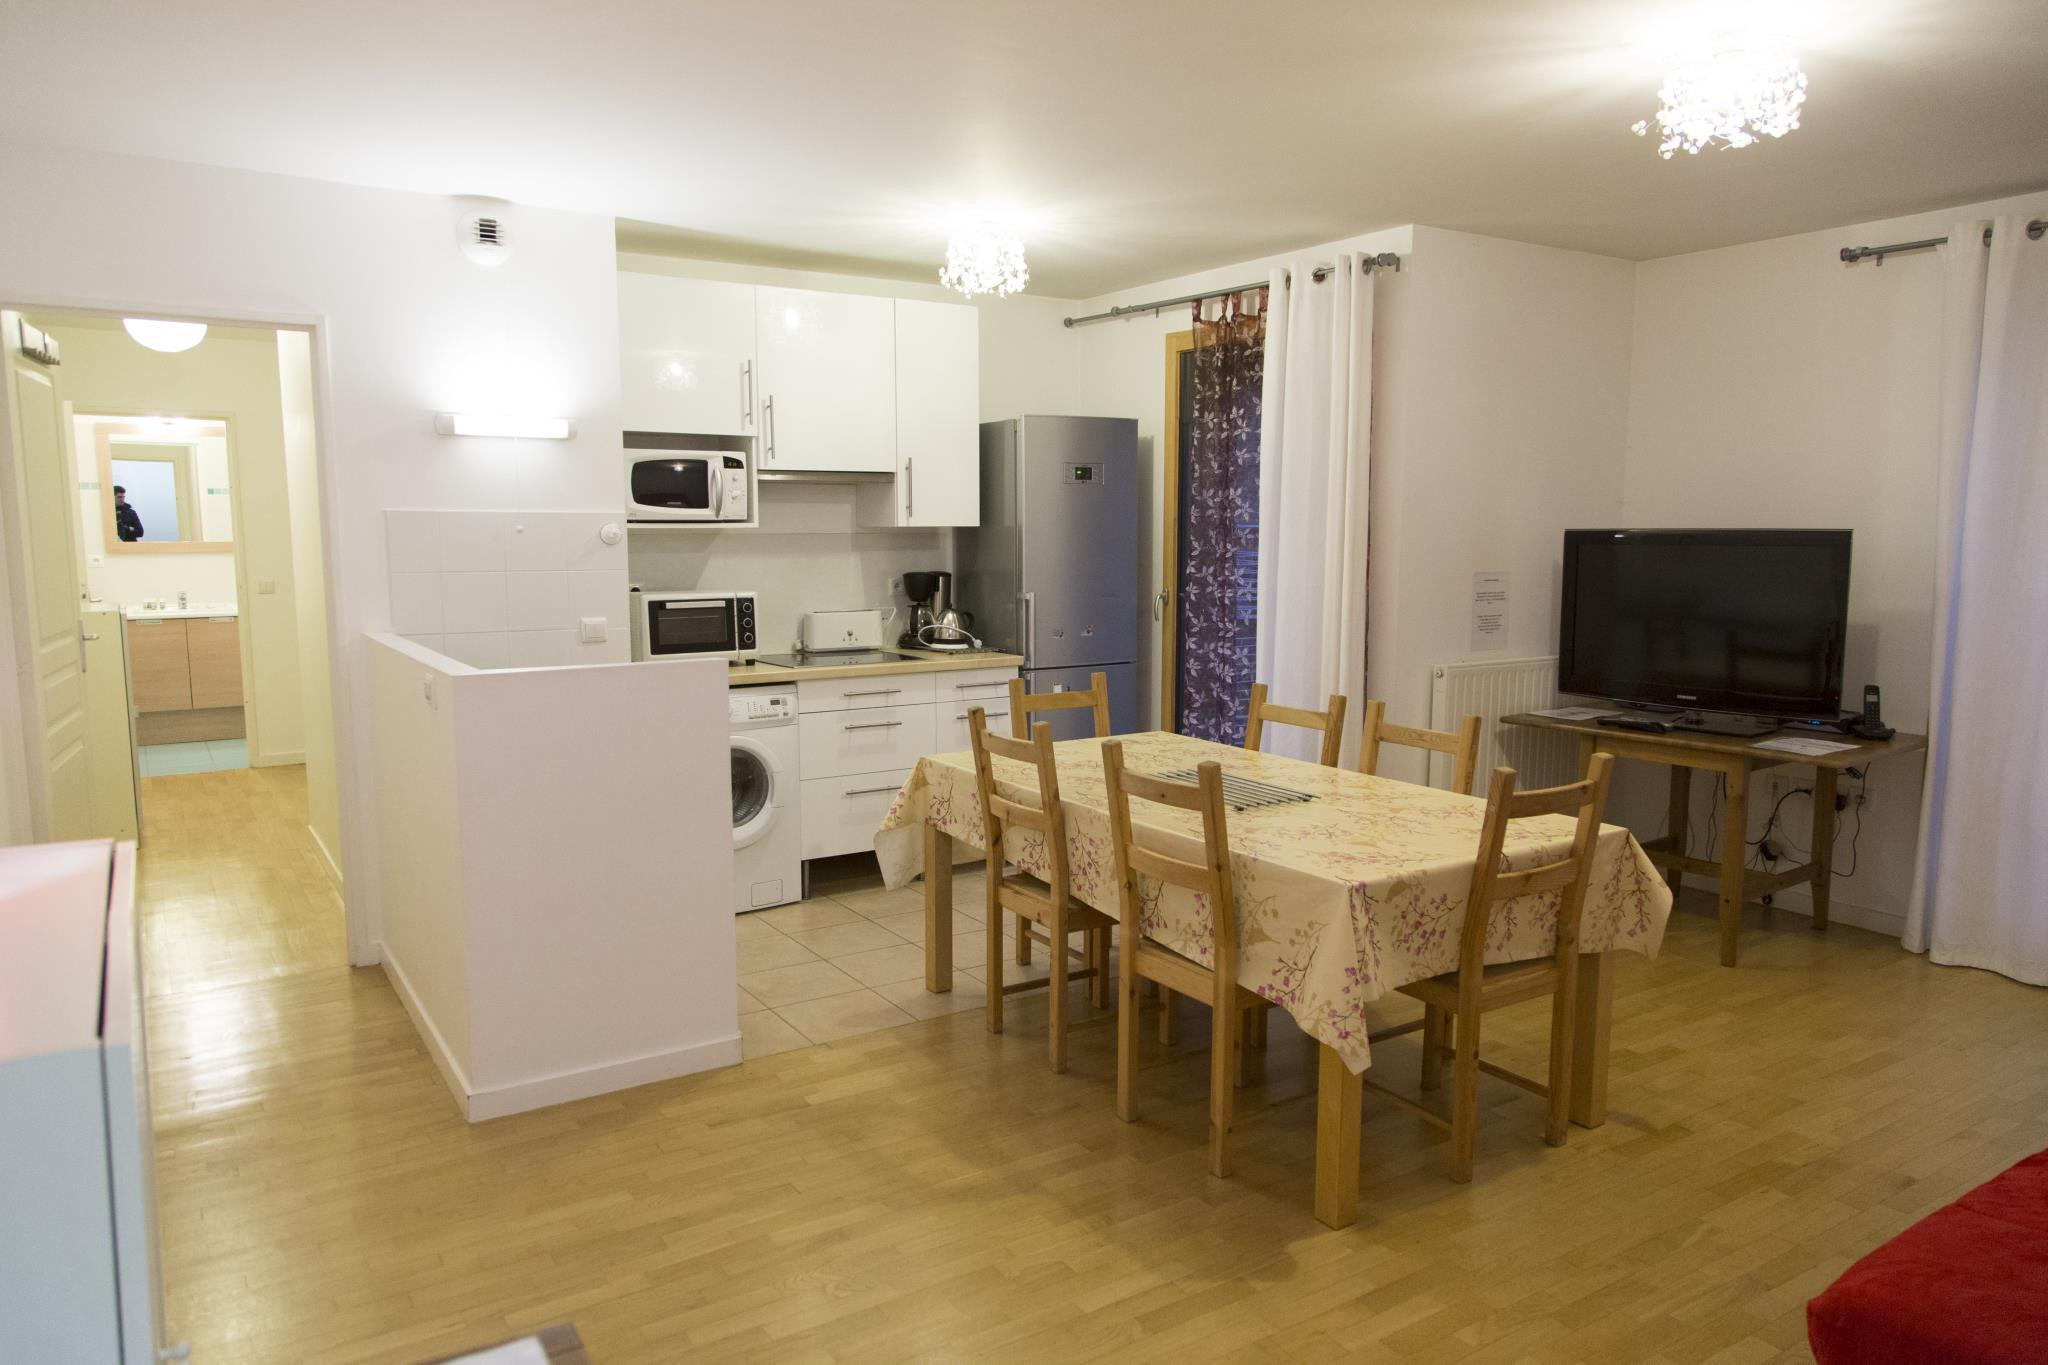 Apartament clàssic- Rue Marcel Bontemps (6 adults) (Classic Apartment - Rue Marcel Bontemps (6 Adults))